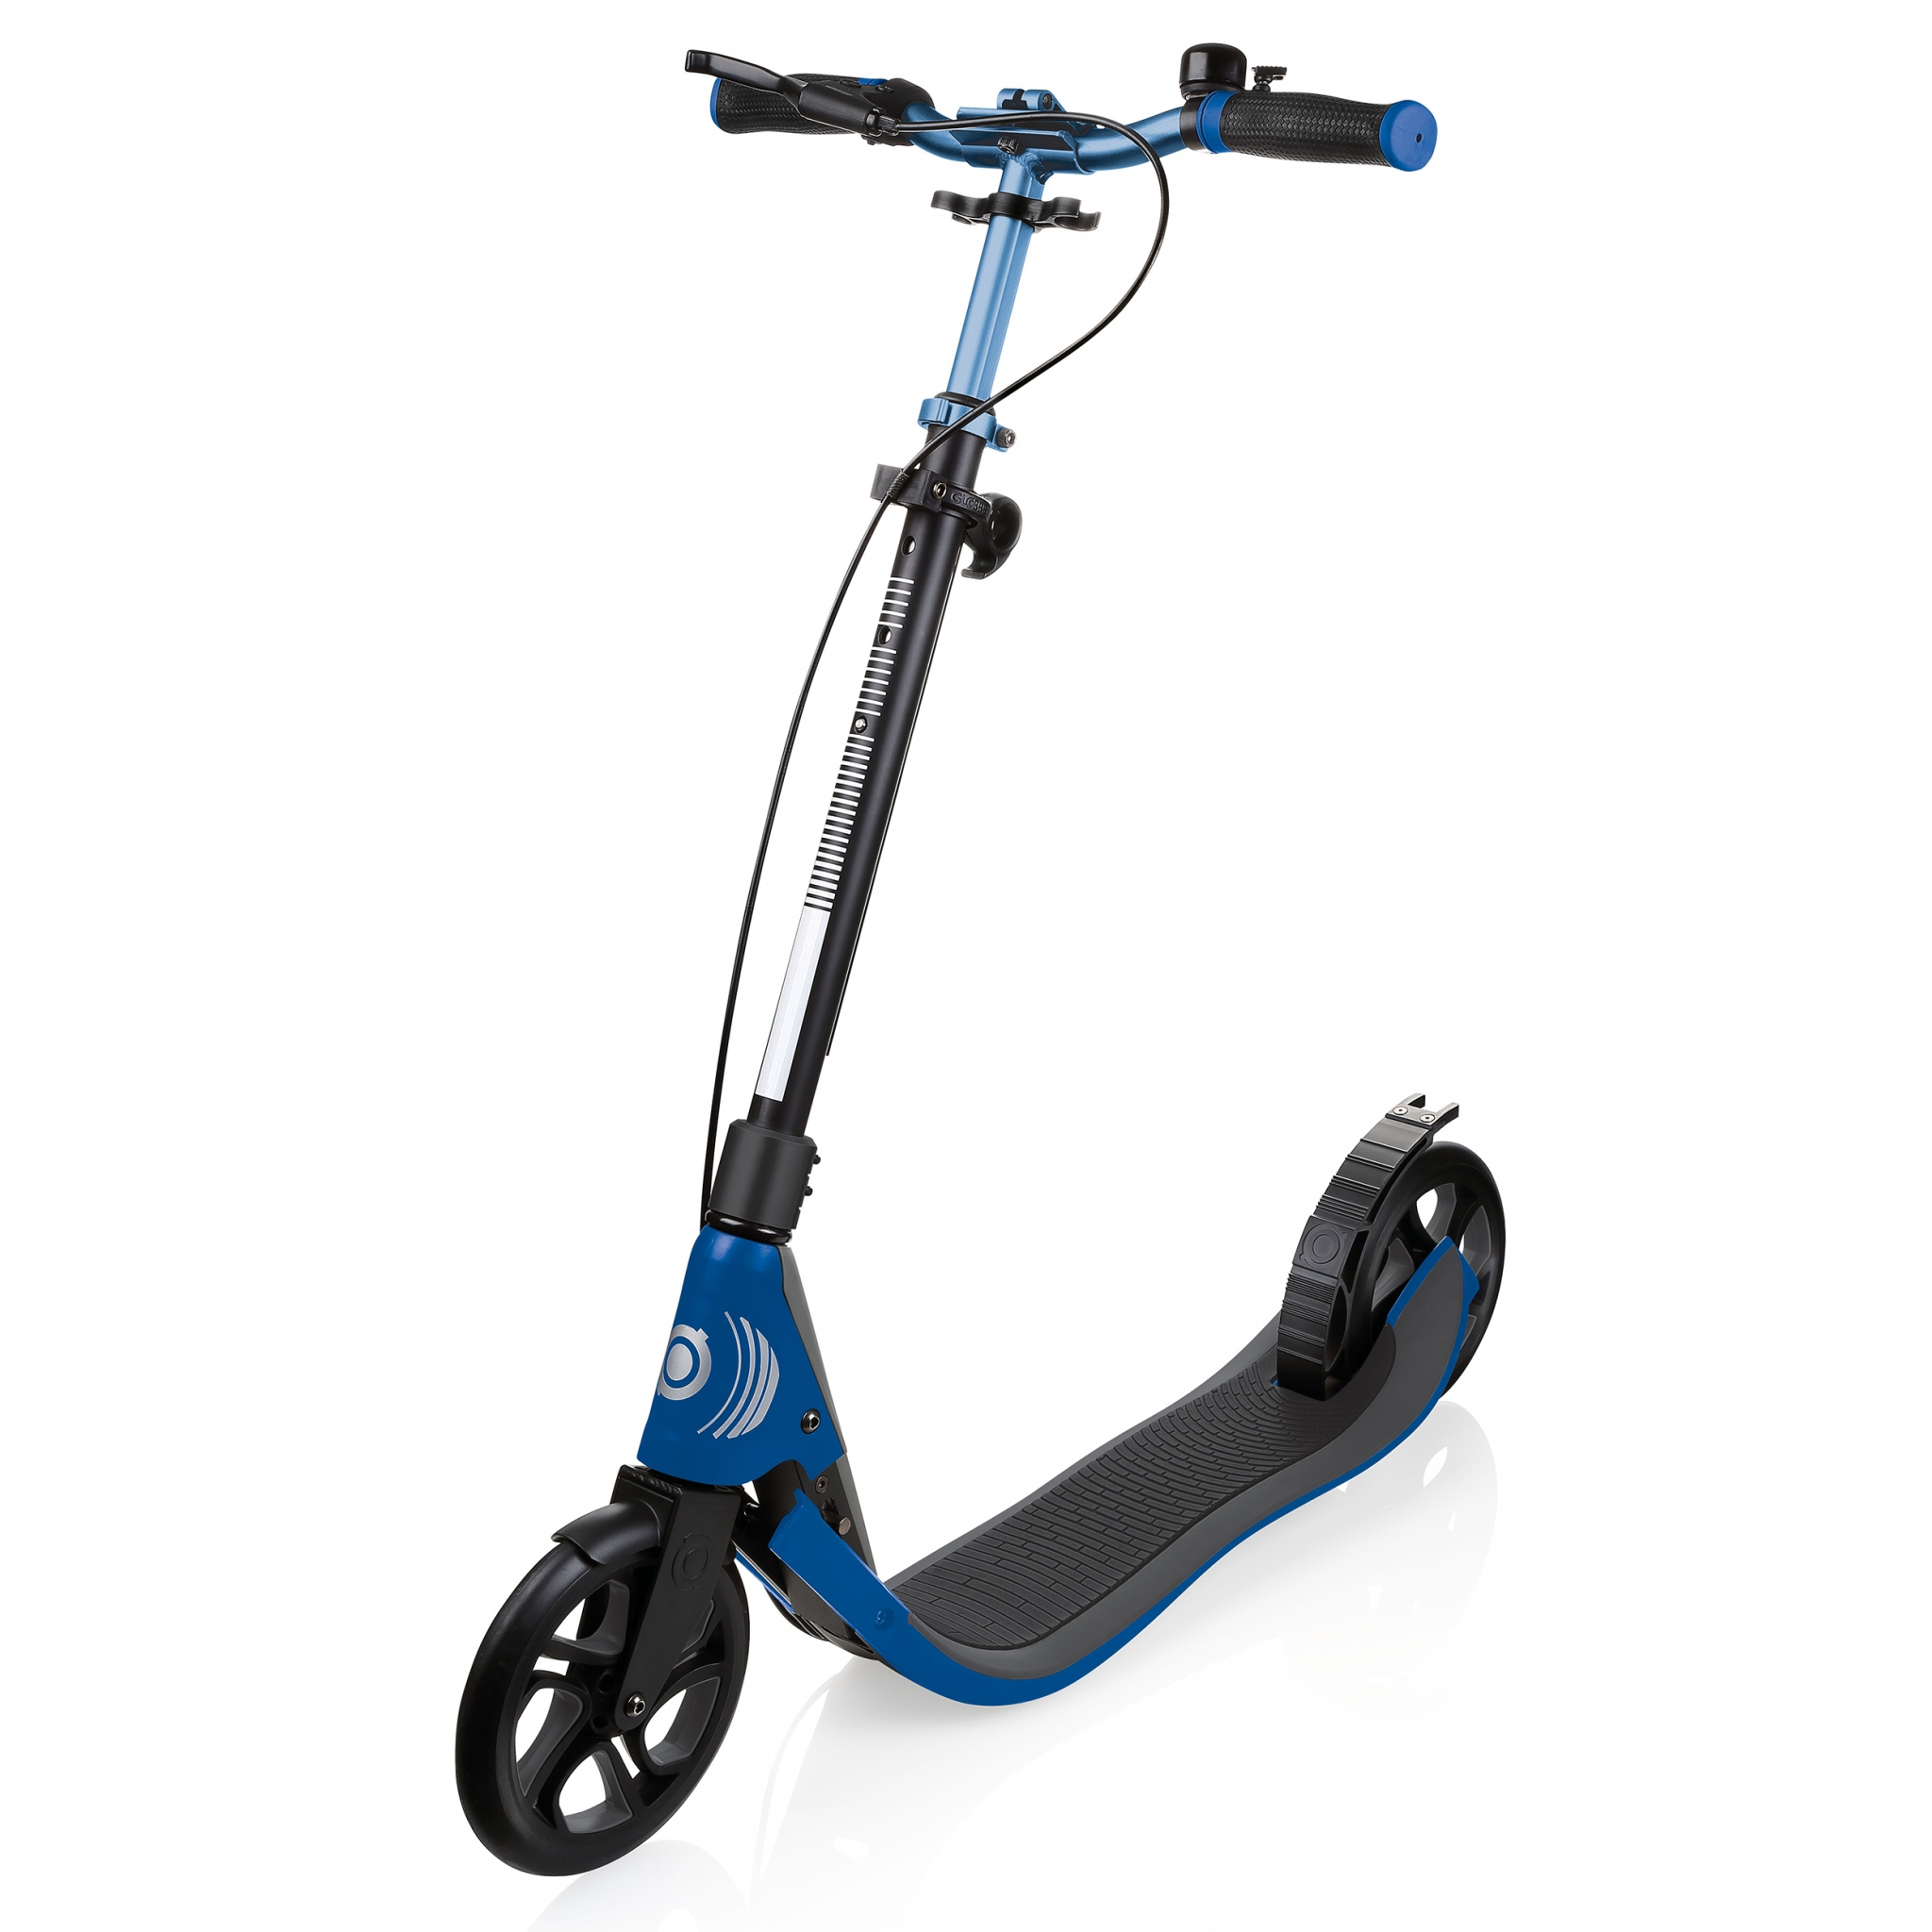 foldable scooter for adults with handbrake - Globber ONE NL 205 DELUXE